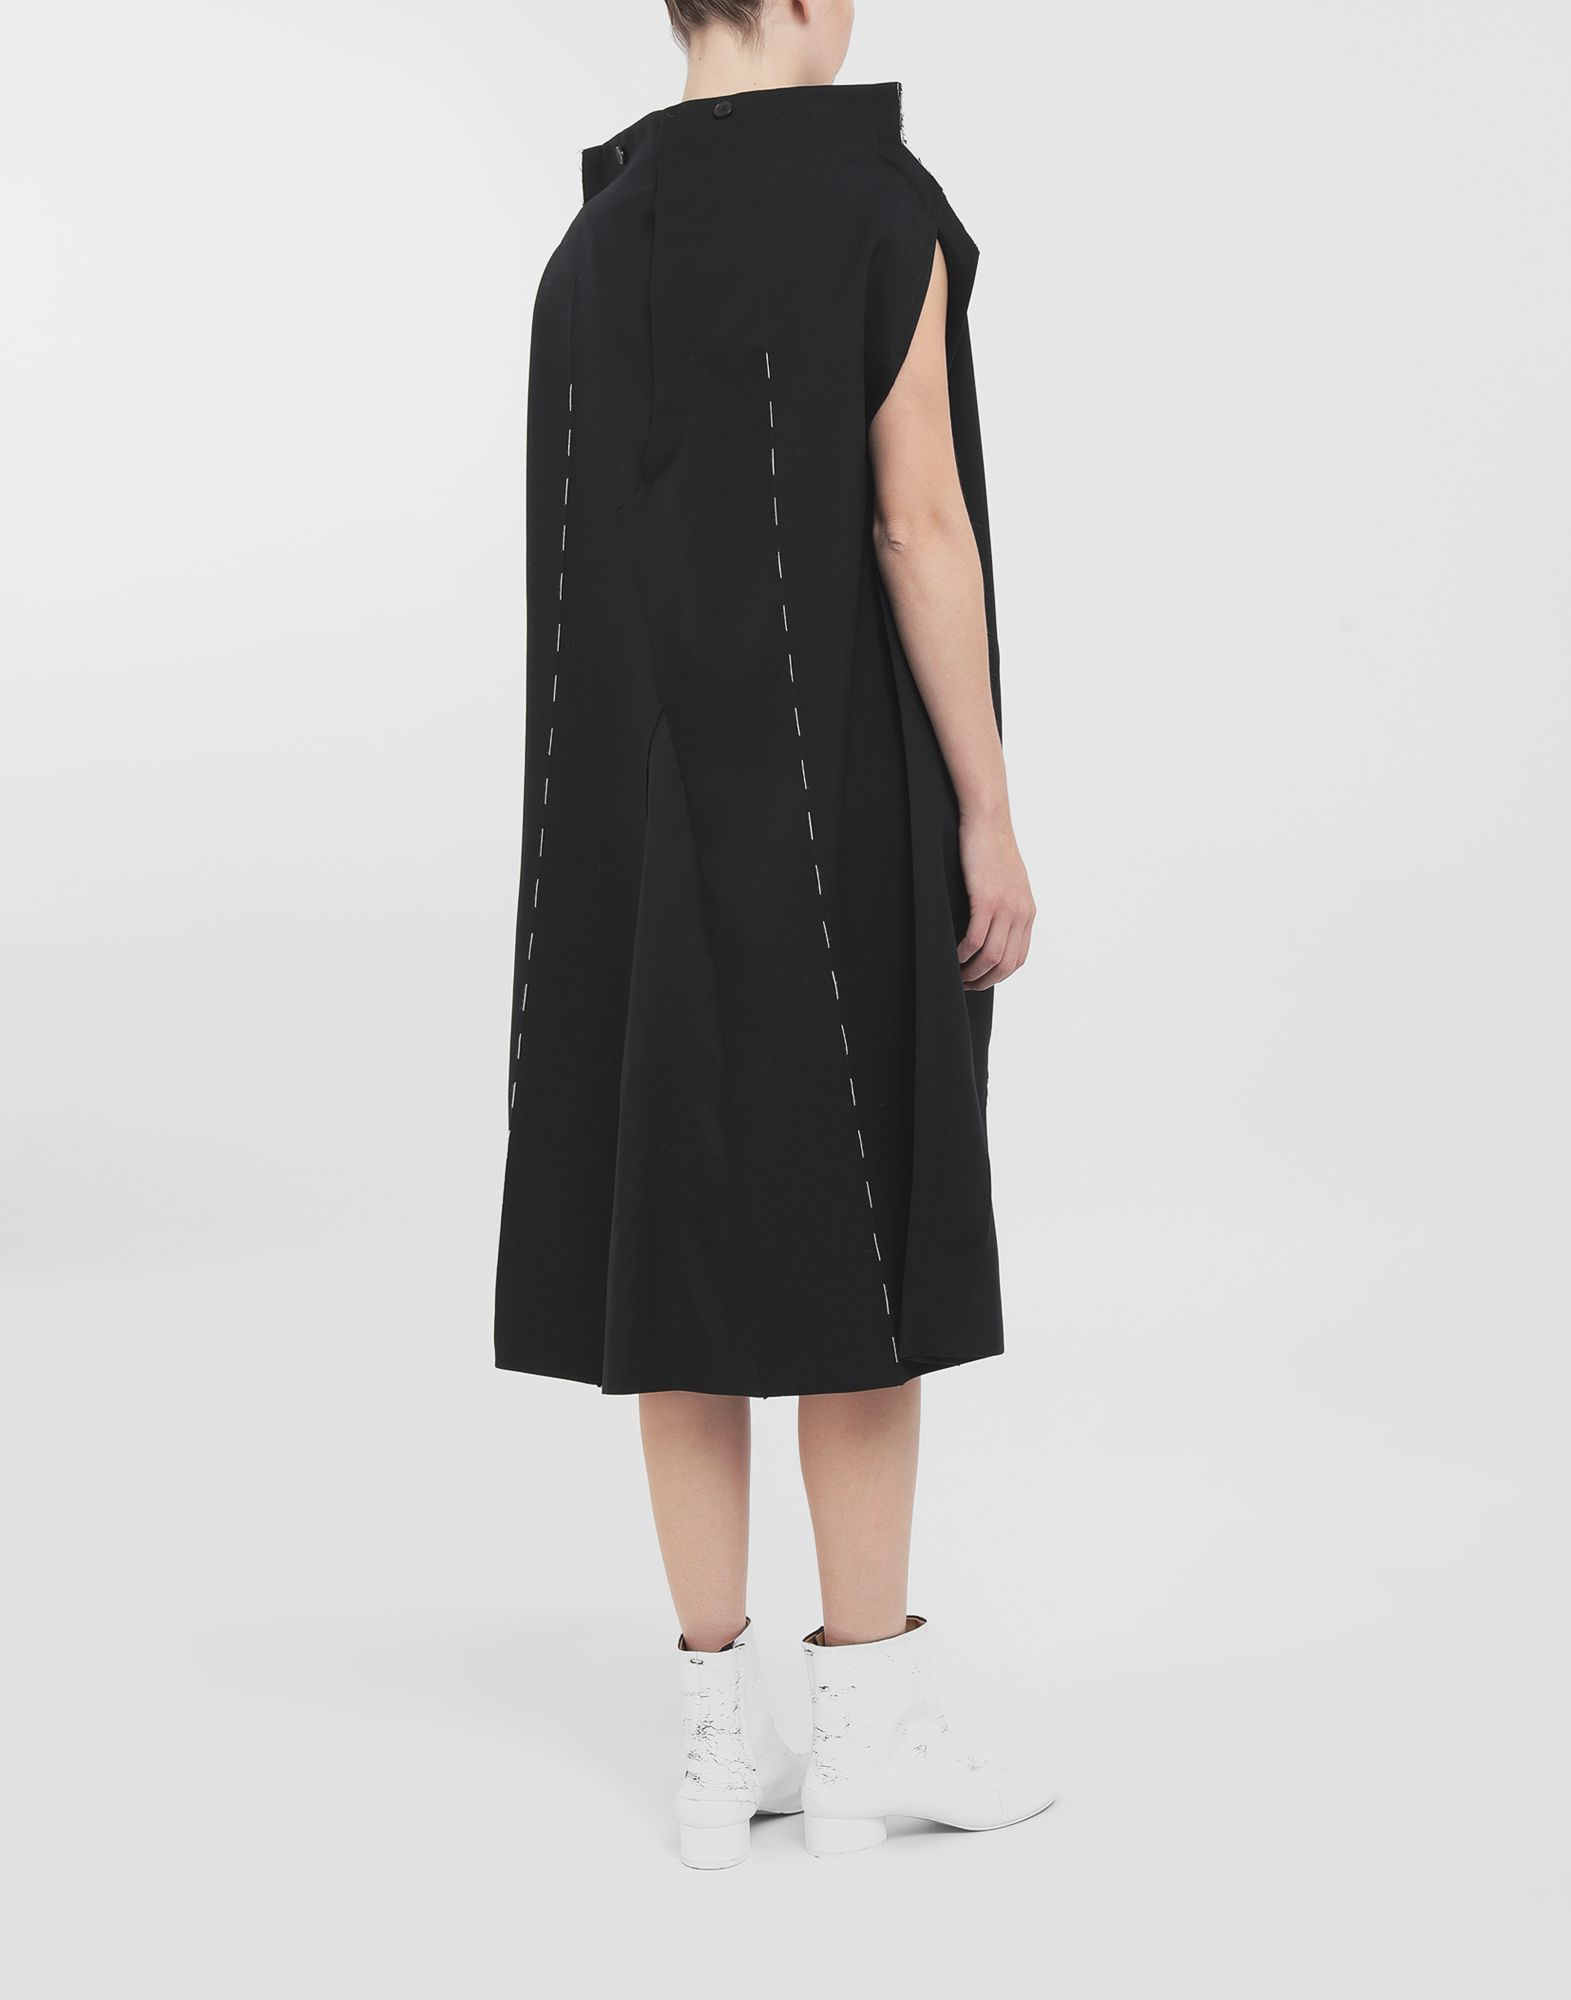 MAISON MARGIELA Outline dress Dress Woman d